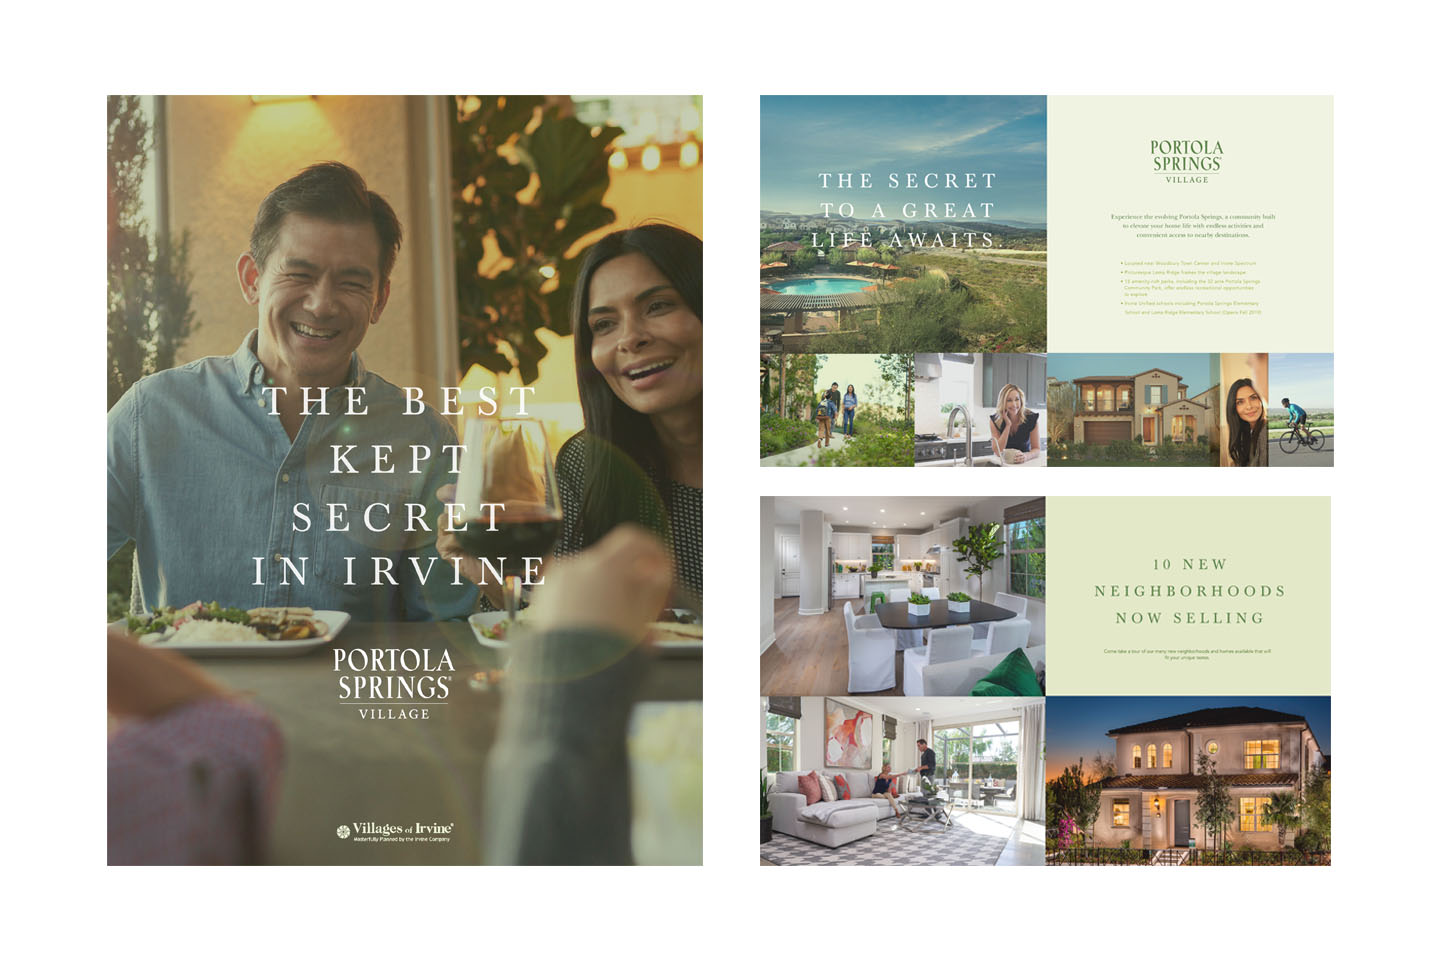 Residential community marketing launch campaign